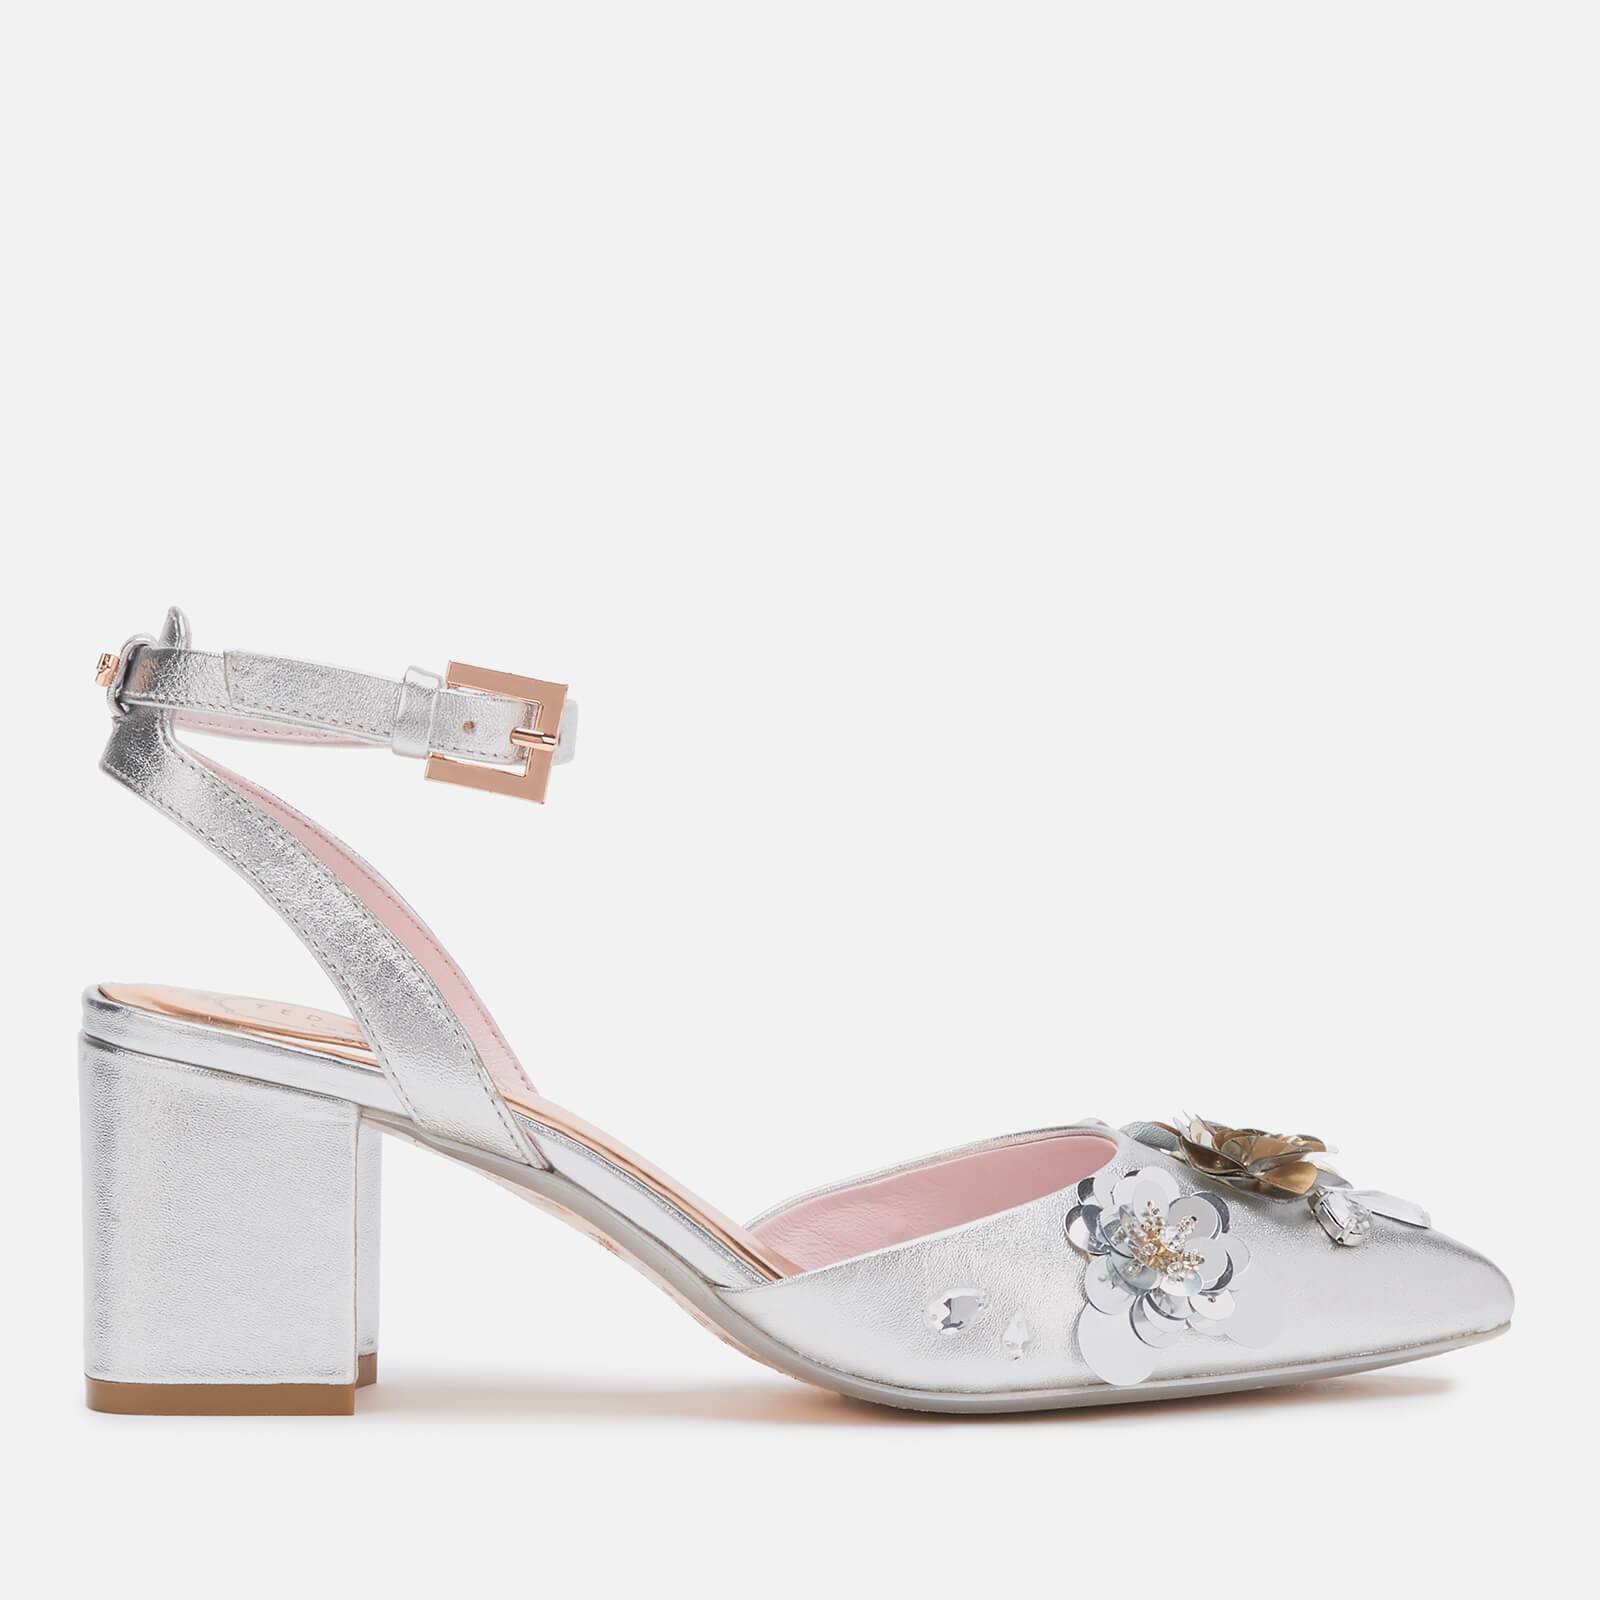 Ted Baker Women's Odesca Floral Embellished Block Heeled Sandals - Silver - UK 4